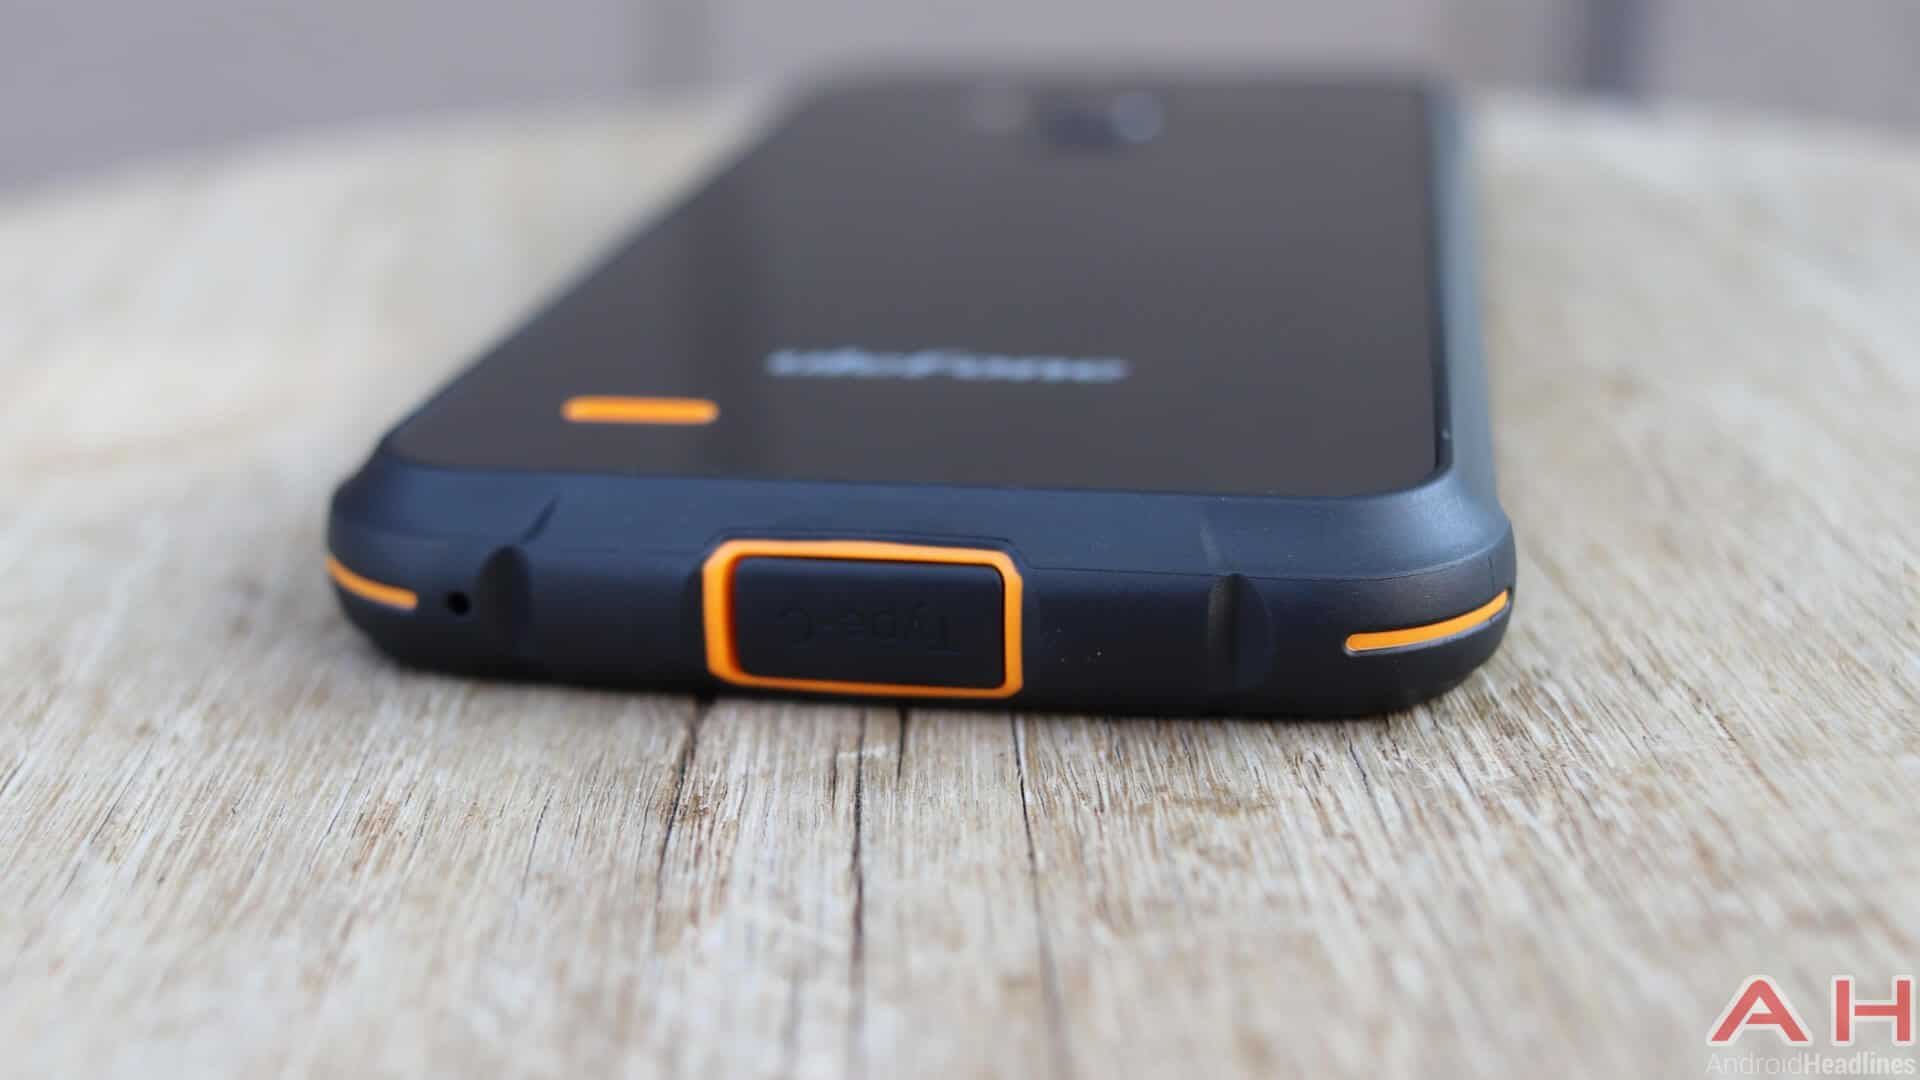 Ulefone Armor 5 Review Hardware Gallery AH 06